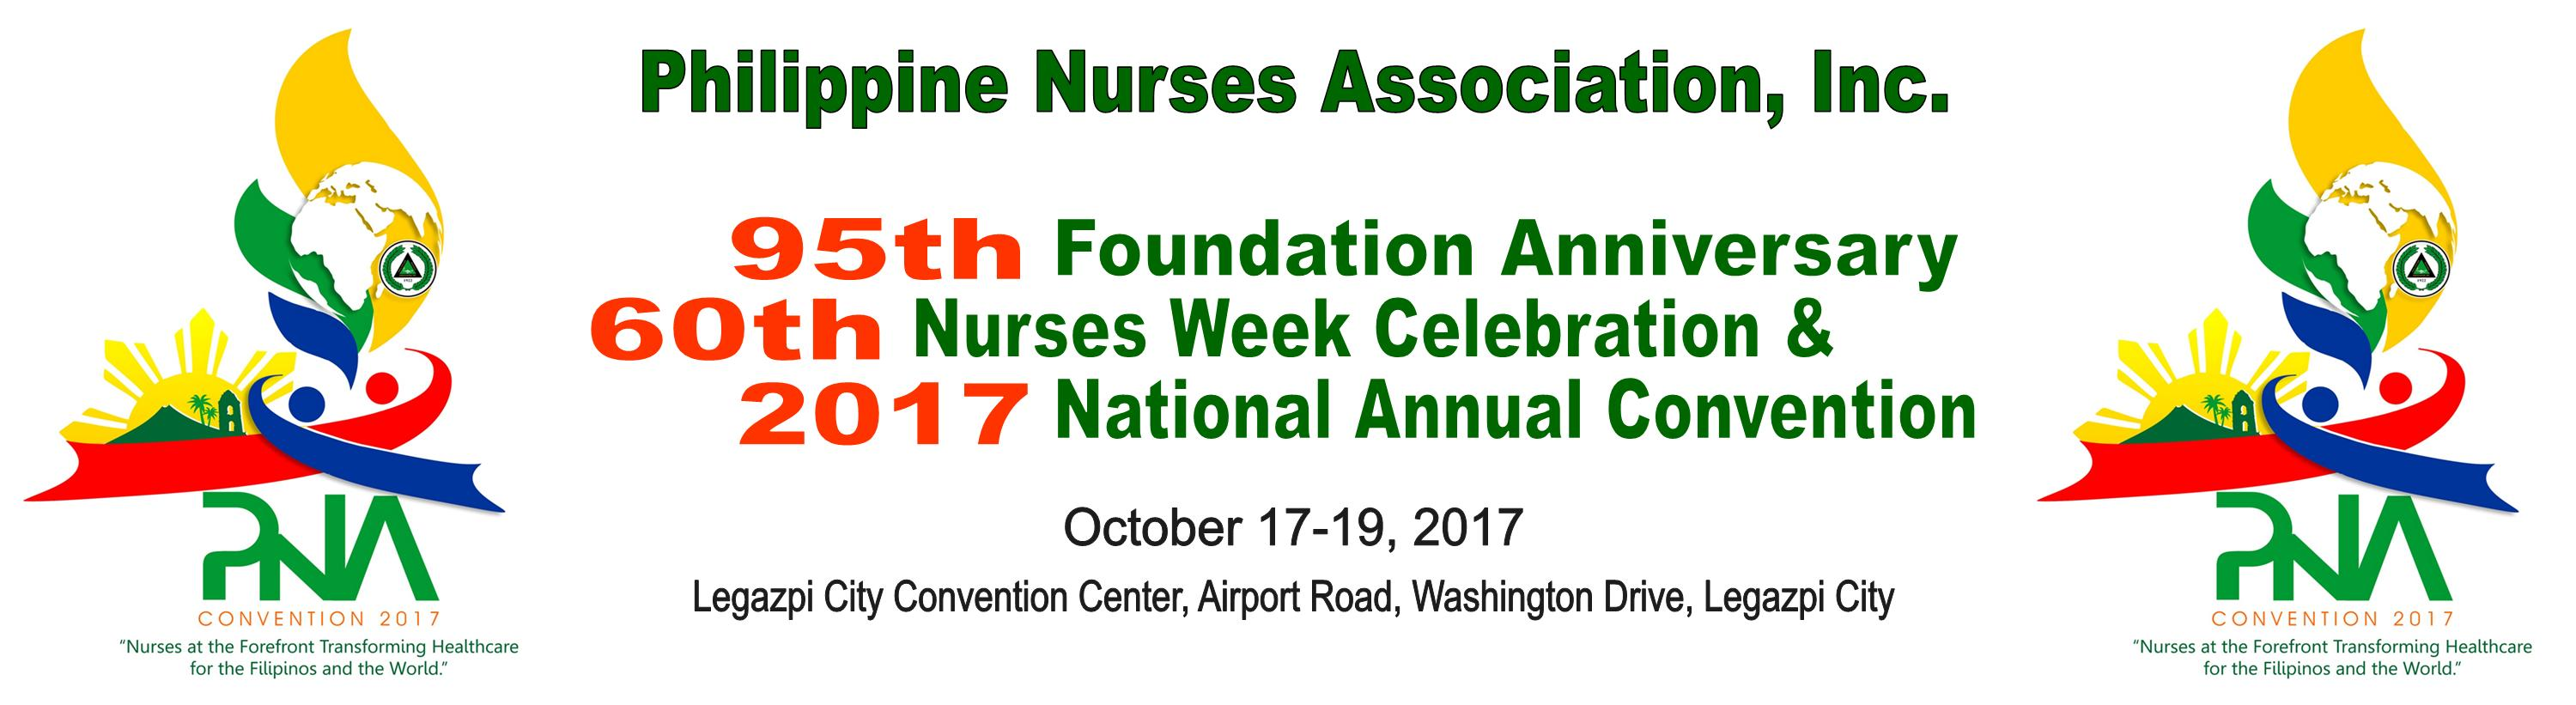 95th Foundation Anniversary, 60th Nurses Week Celebration and National Convention